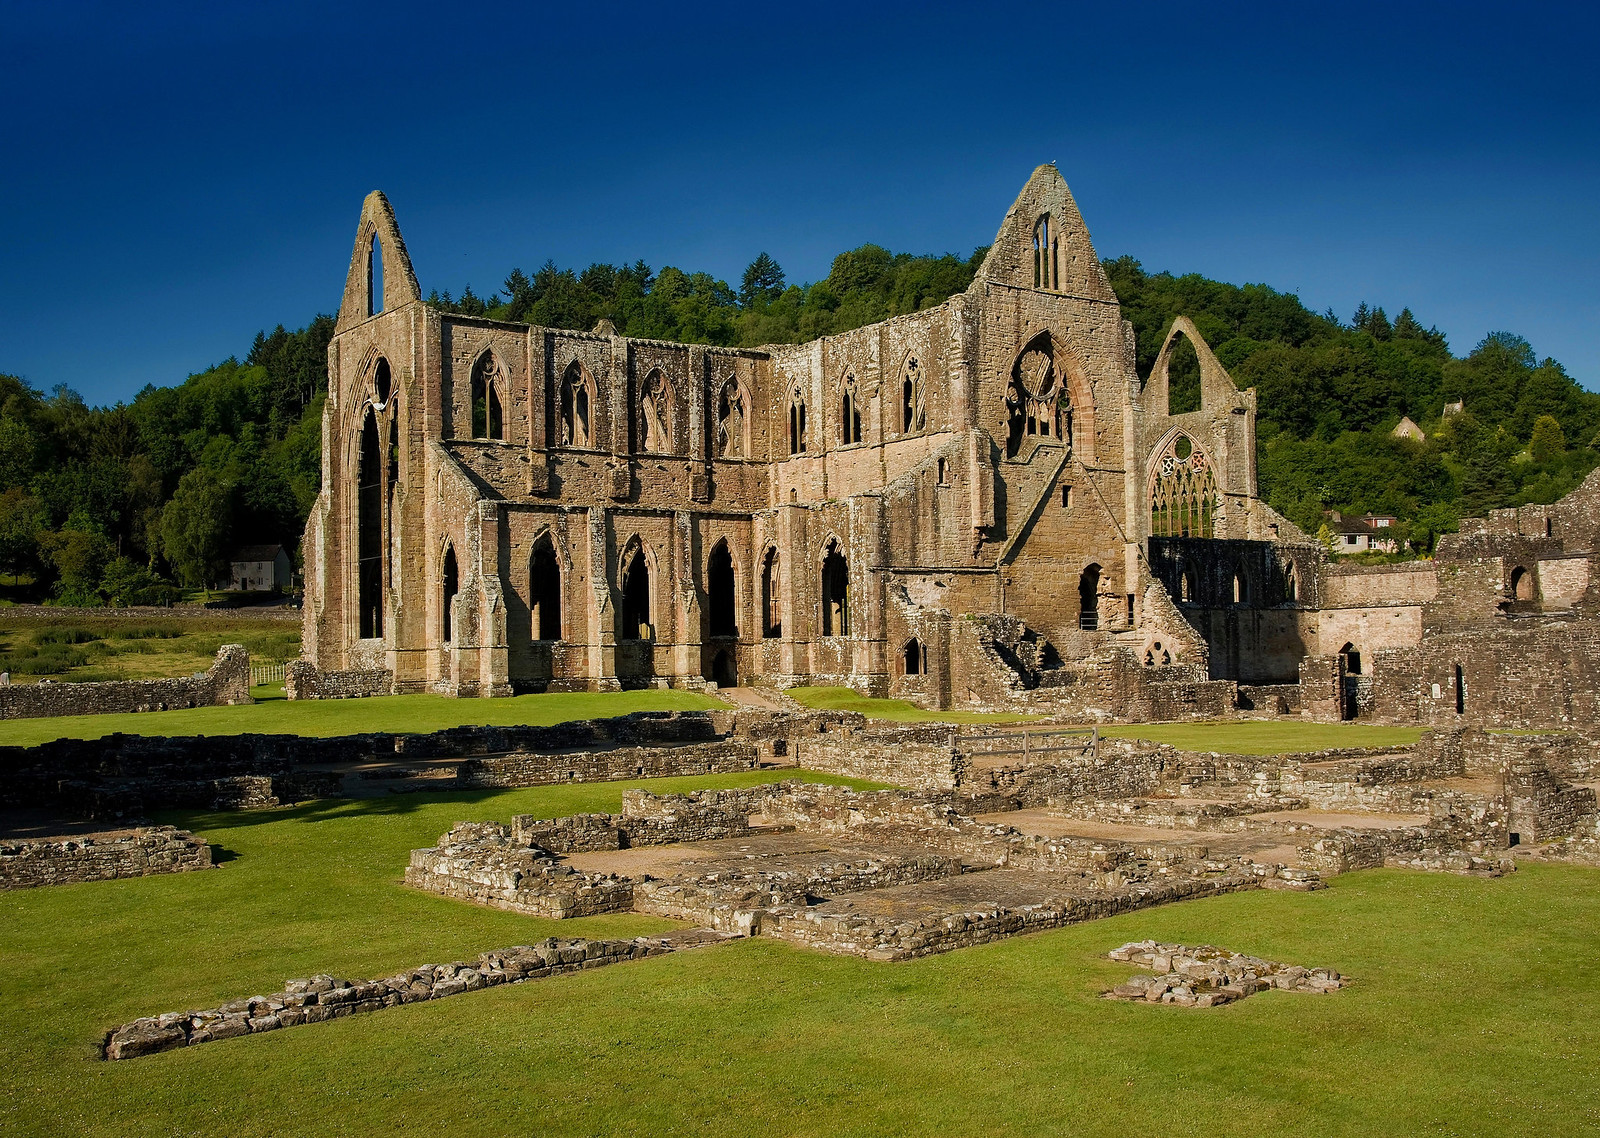 Tintern Abbey and Courtyard. Credit Saffron Blaze